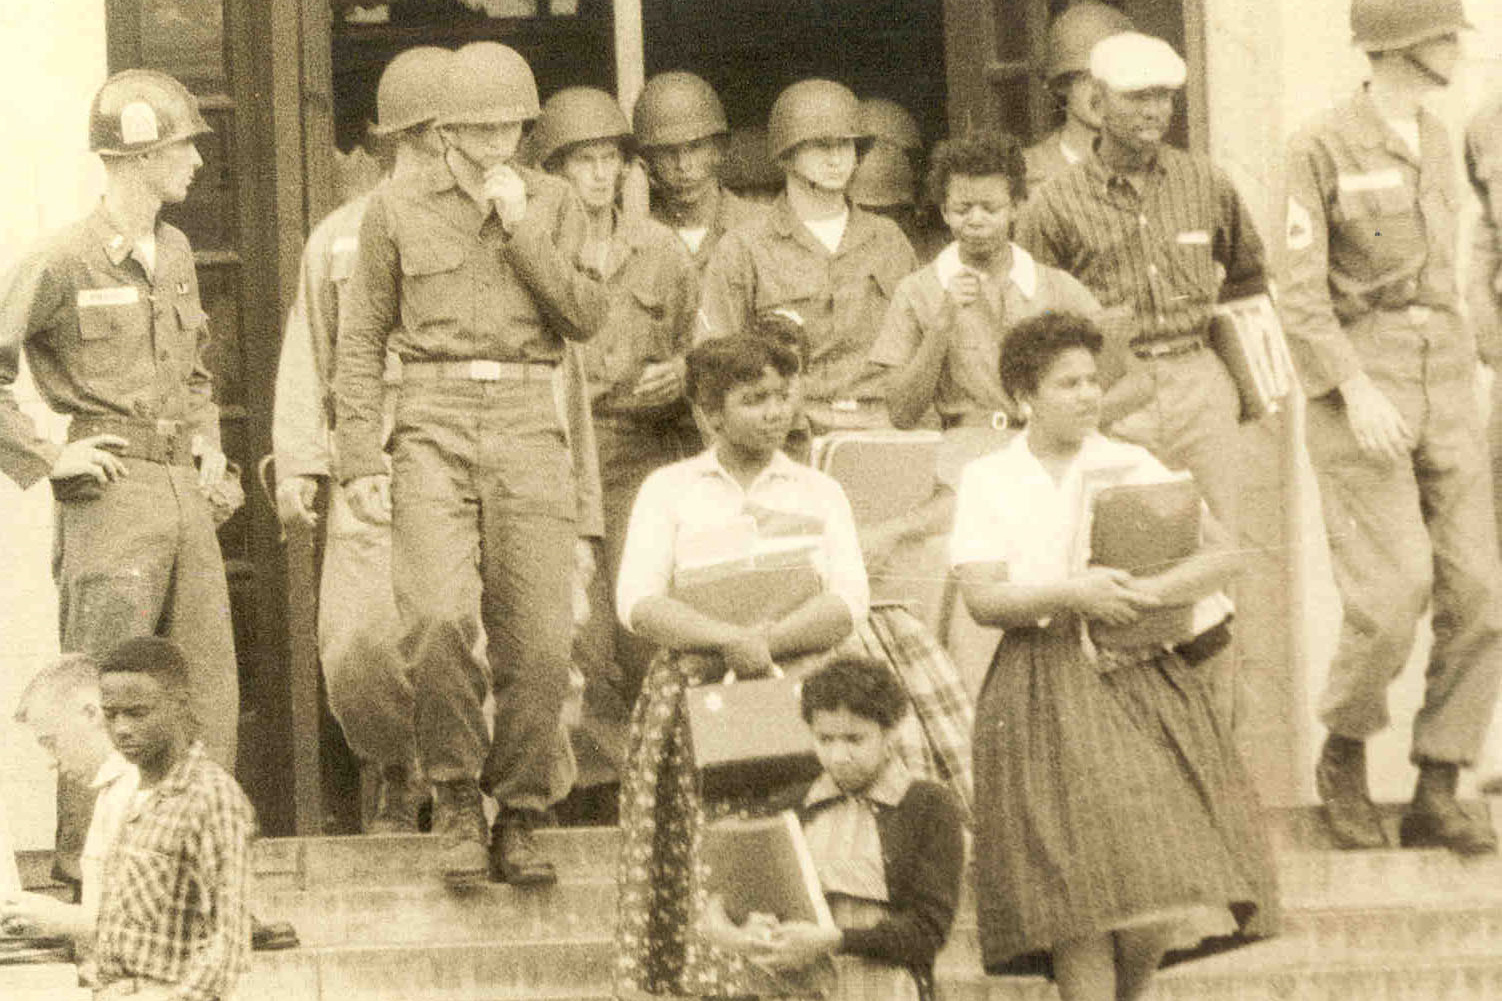 """One of Mims' favorite books is """"Warriors Don't Cry,"""" by Melba Pattillo Beals (with lunch box), one of the famed """"Little Rock Nine."""""""